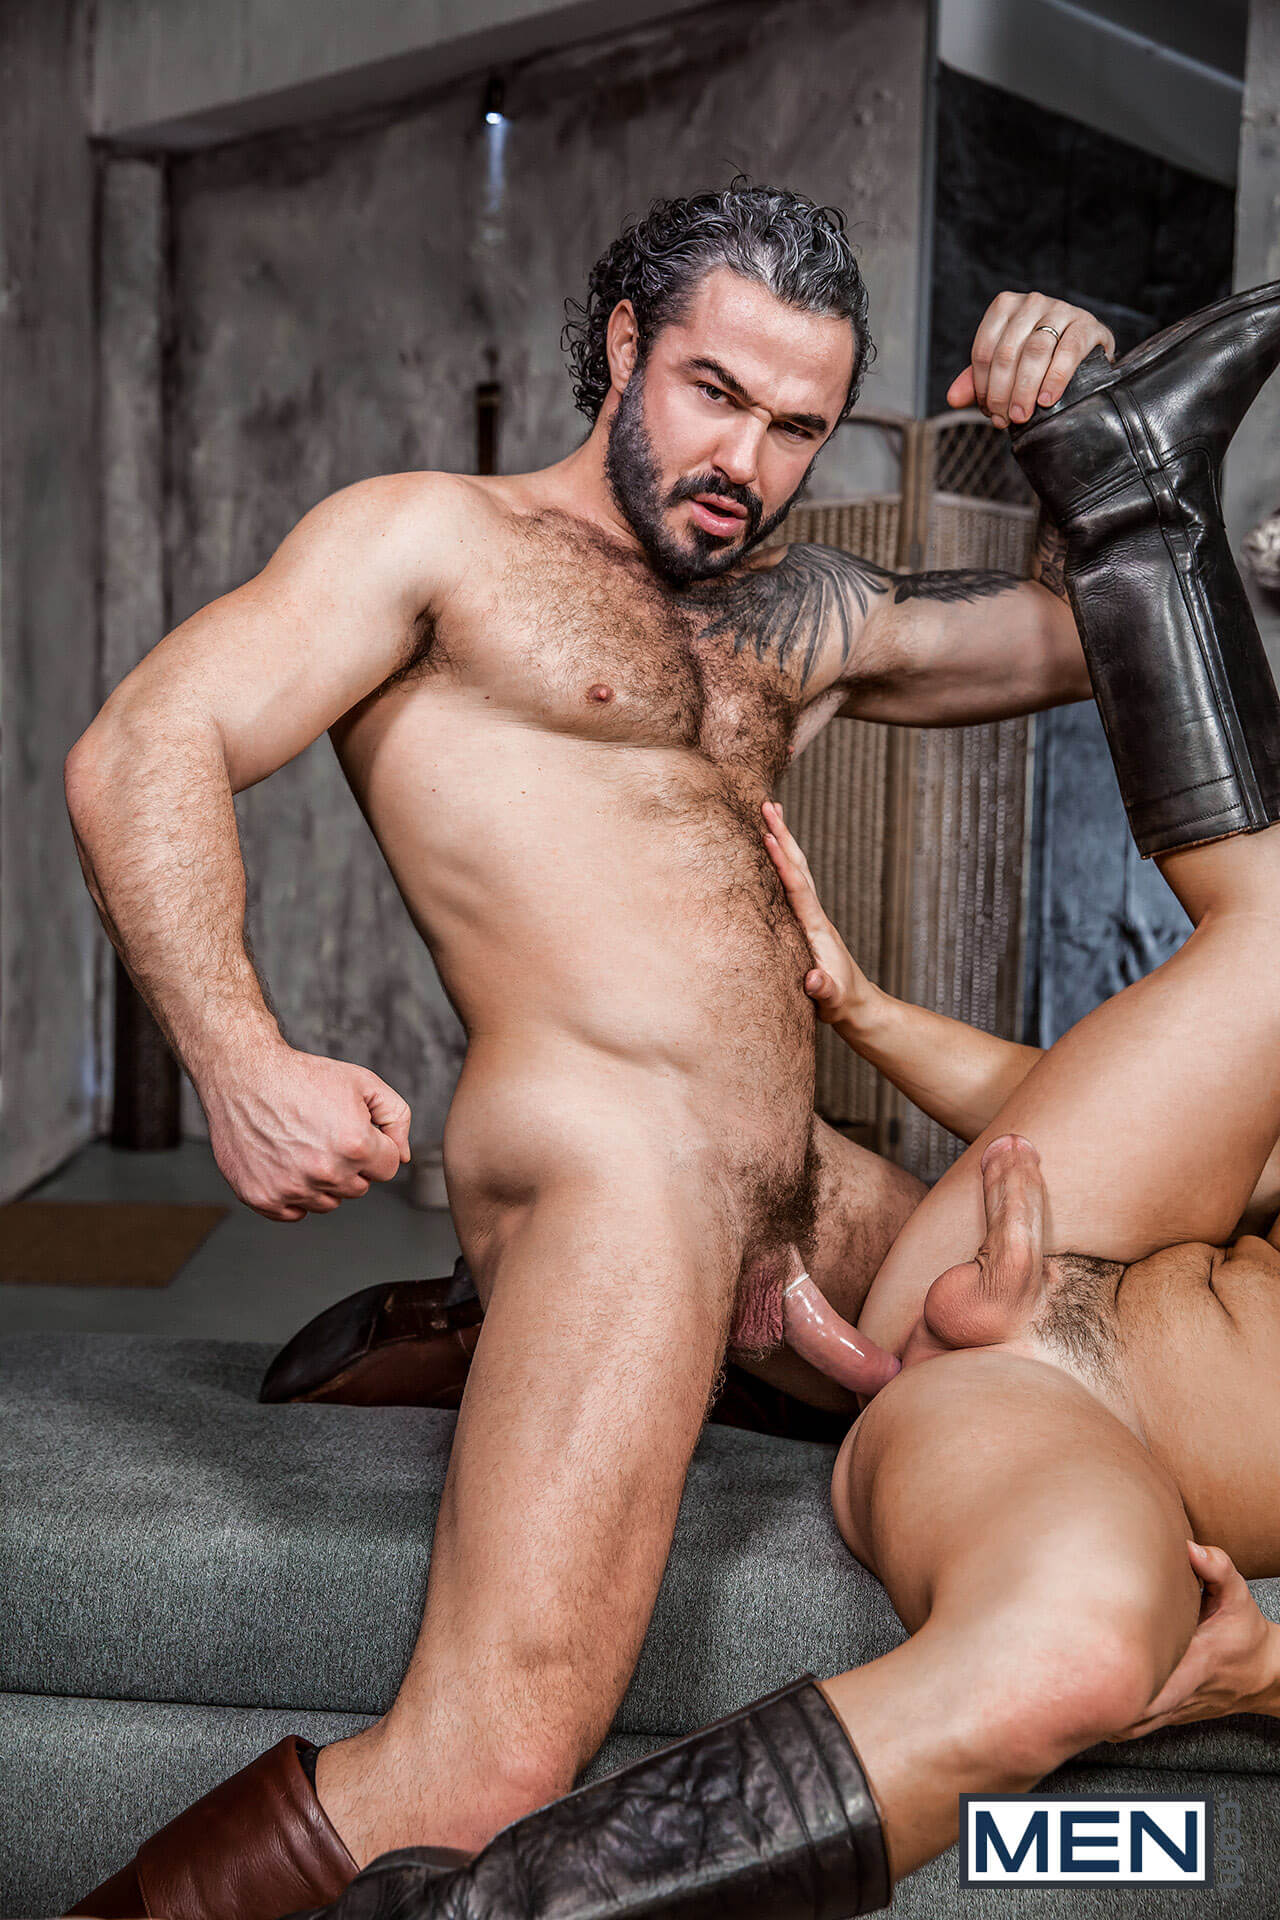 men drill my hole star wars 1 a gay xxx parody jessy ares luke adams gay porn blog image 44